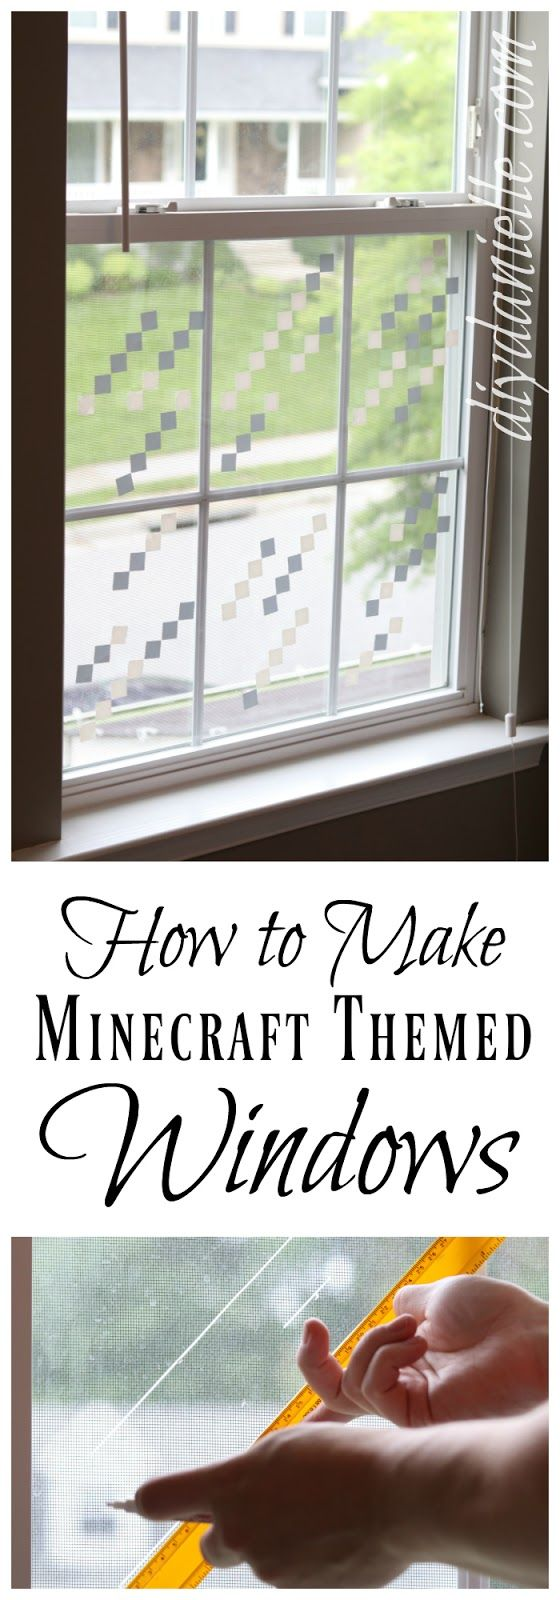 How to make Minecraft Windows with the Cricut Air 2